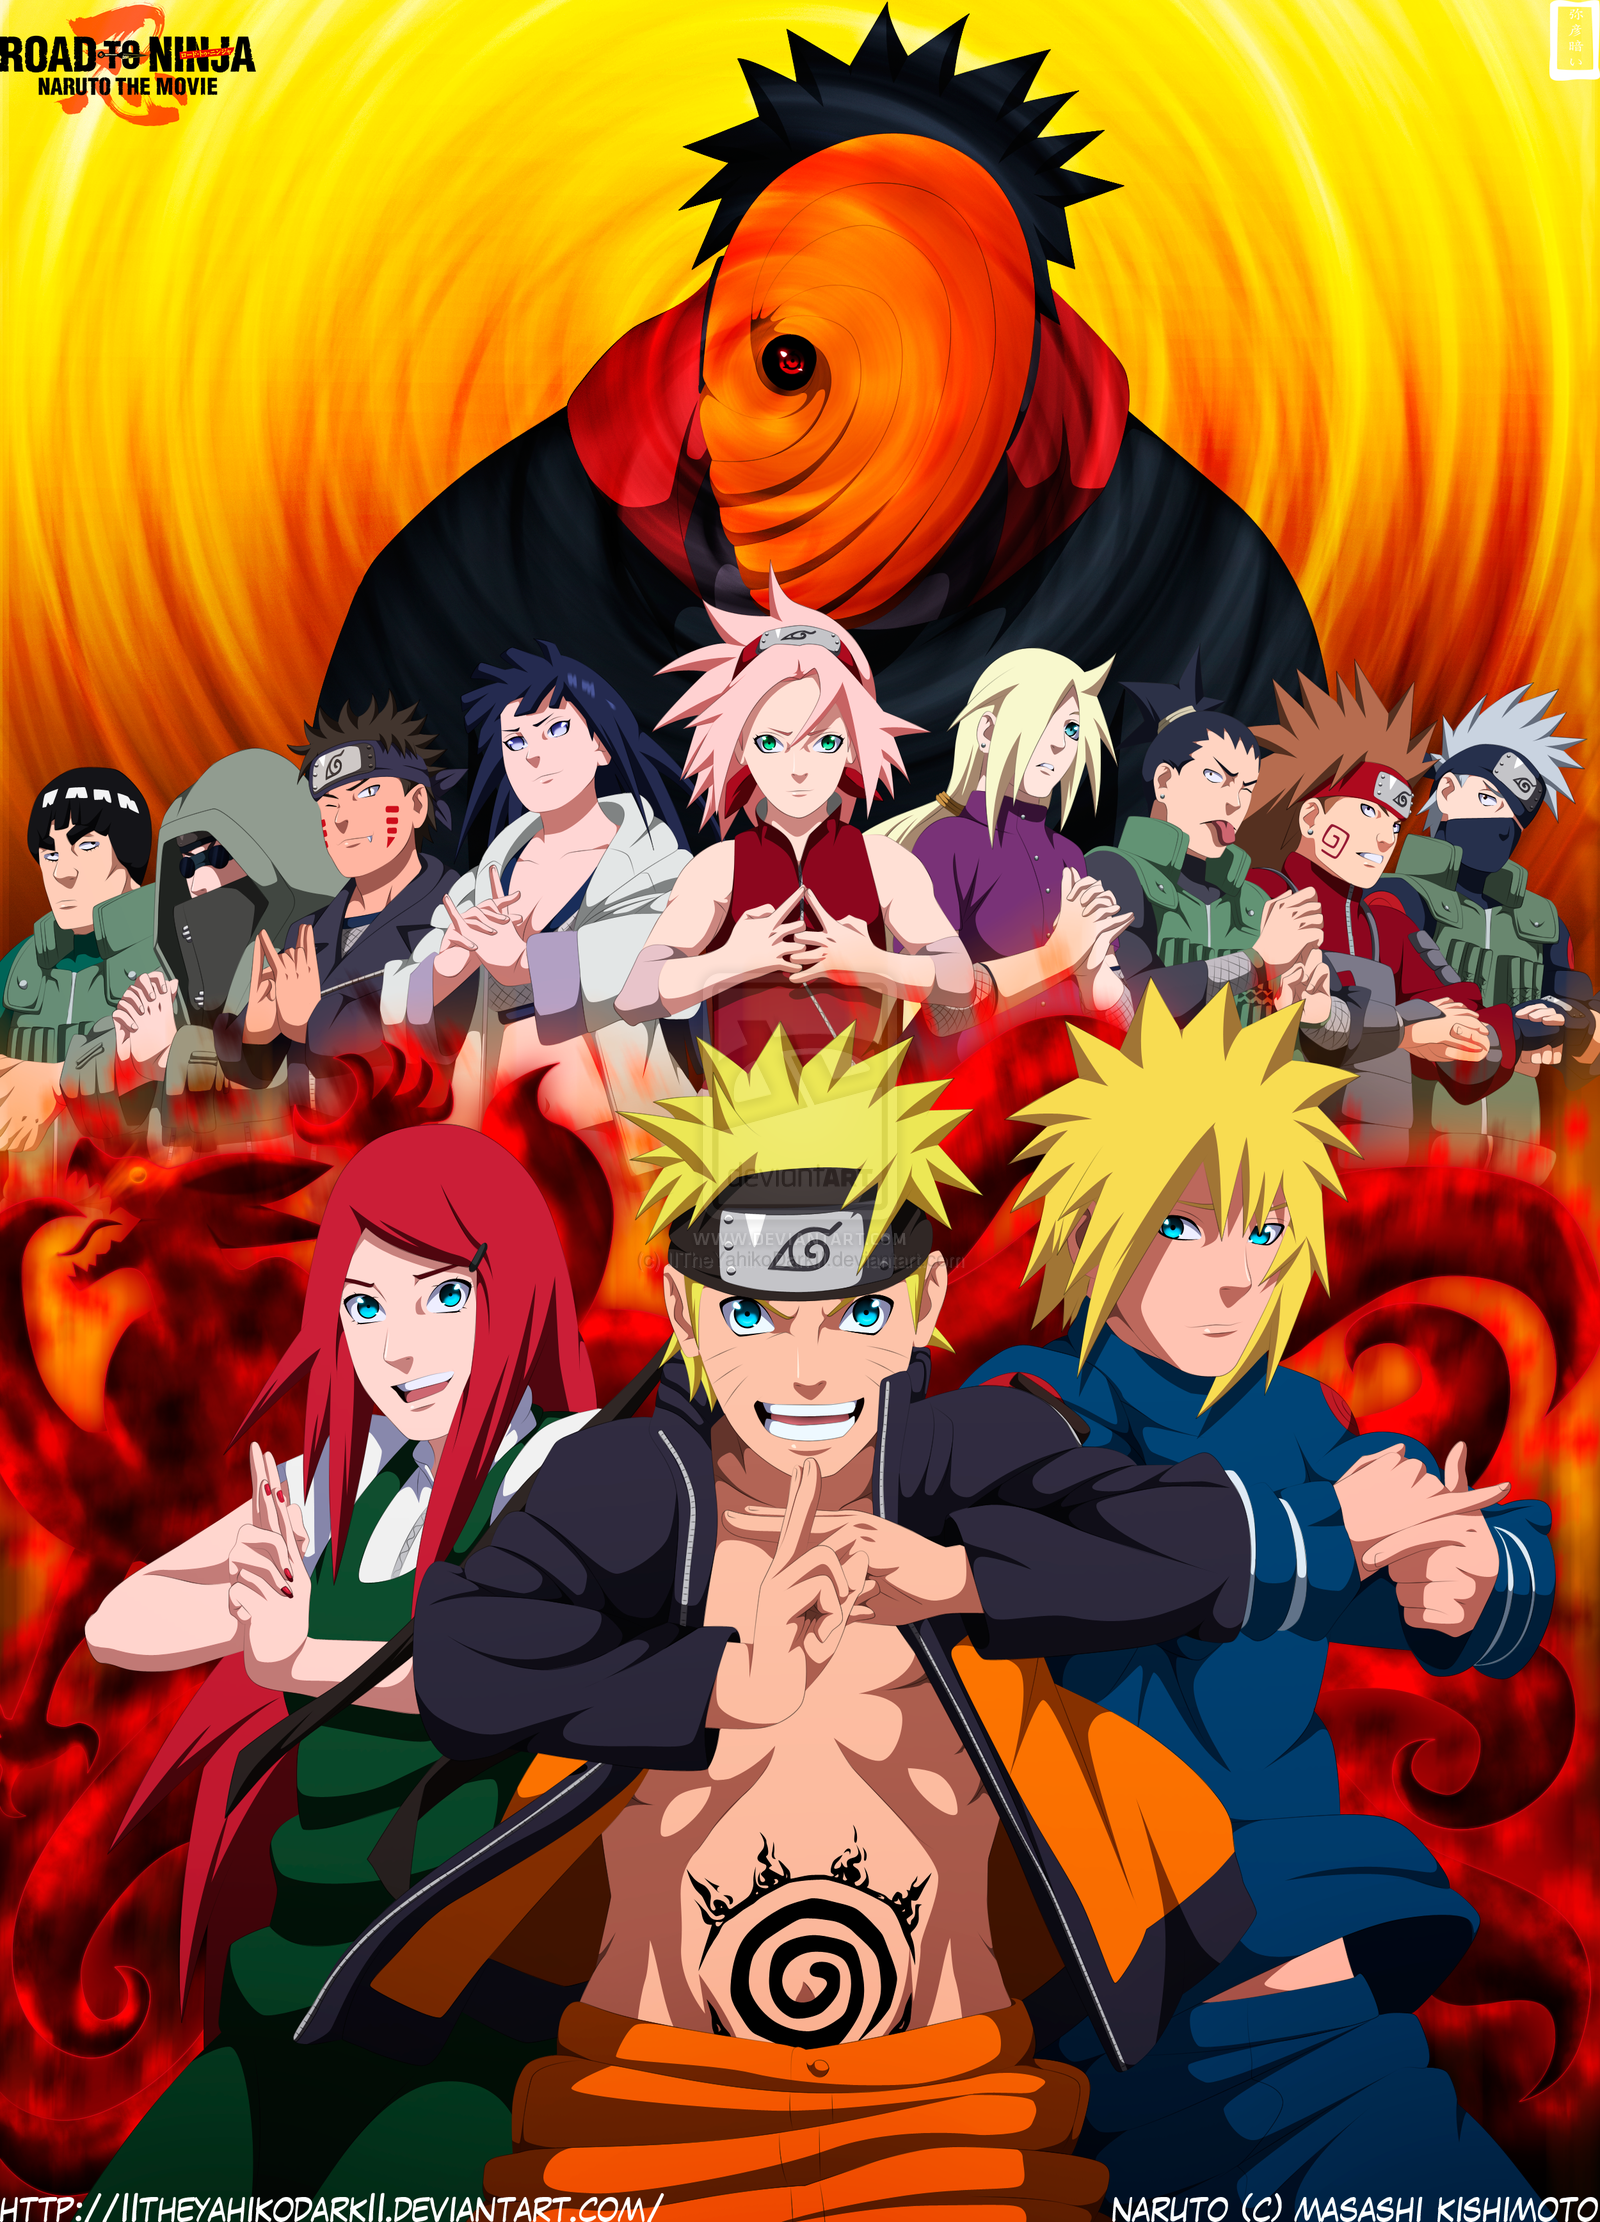 naruto_shippuden_road_to_ninja_by_iithey